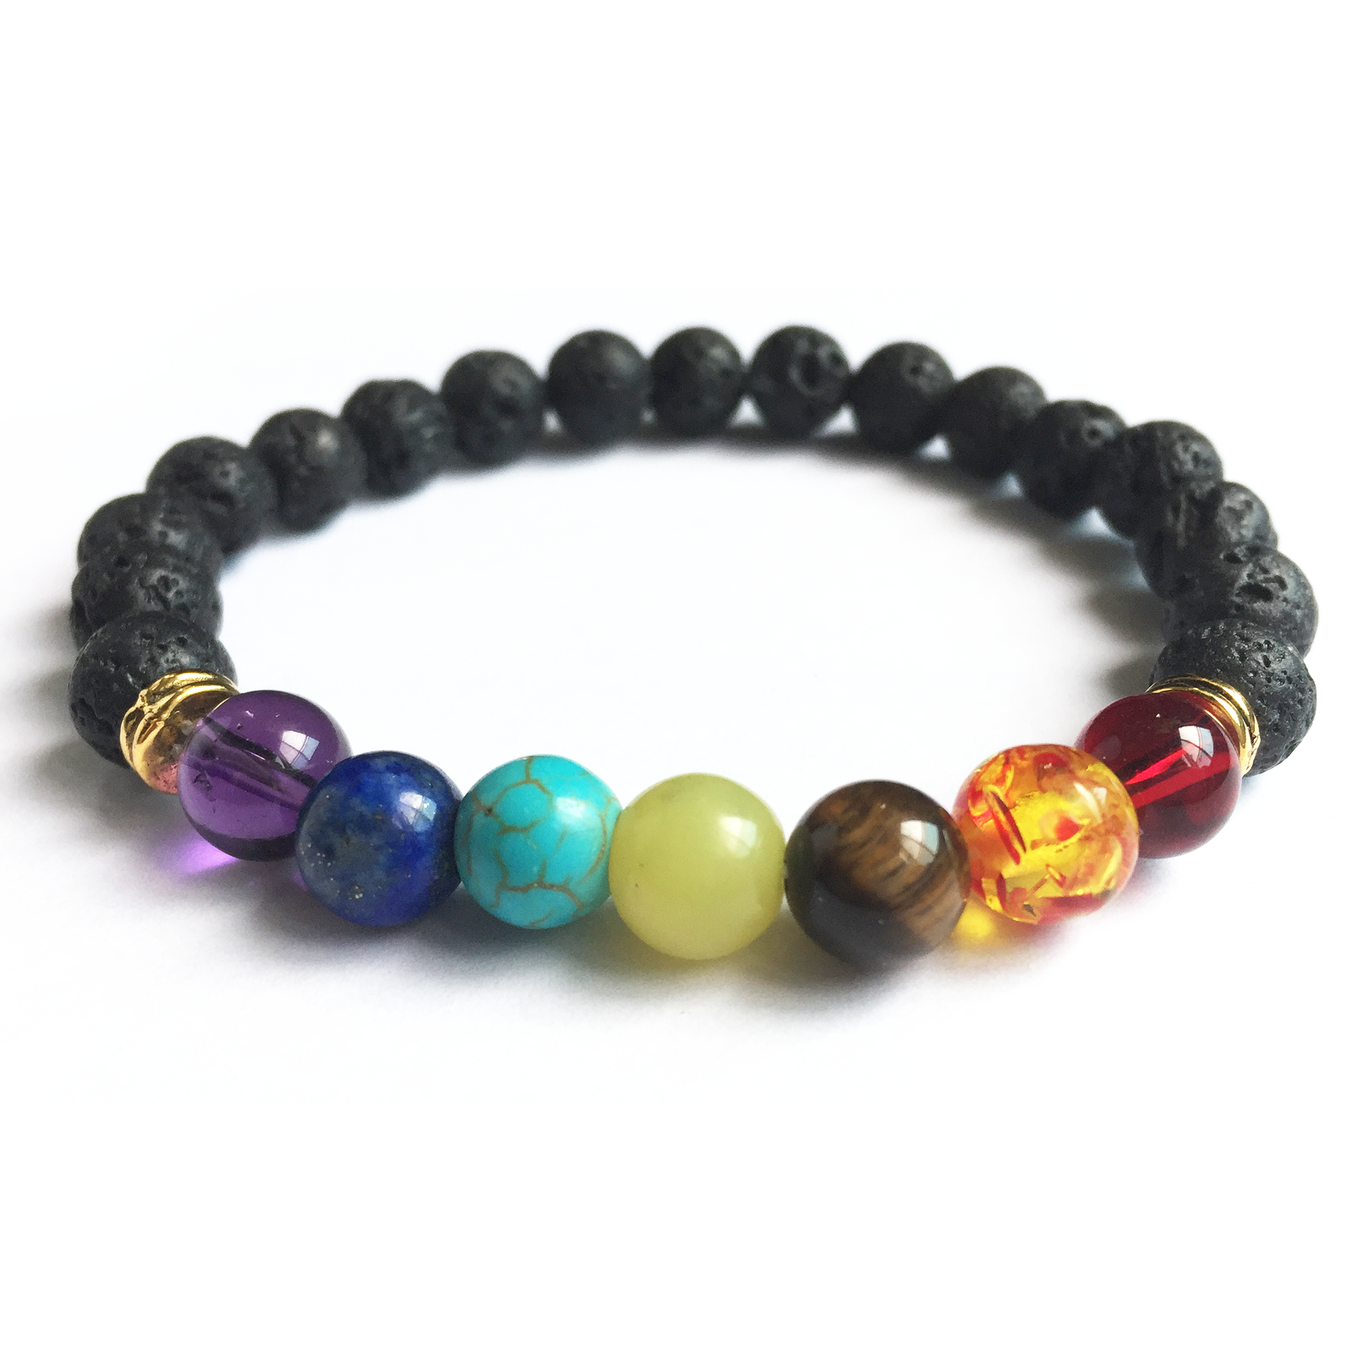 Chakras bracelets & Necklaces